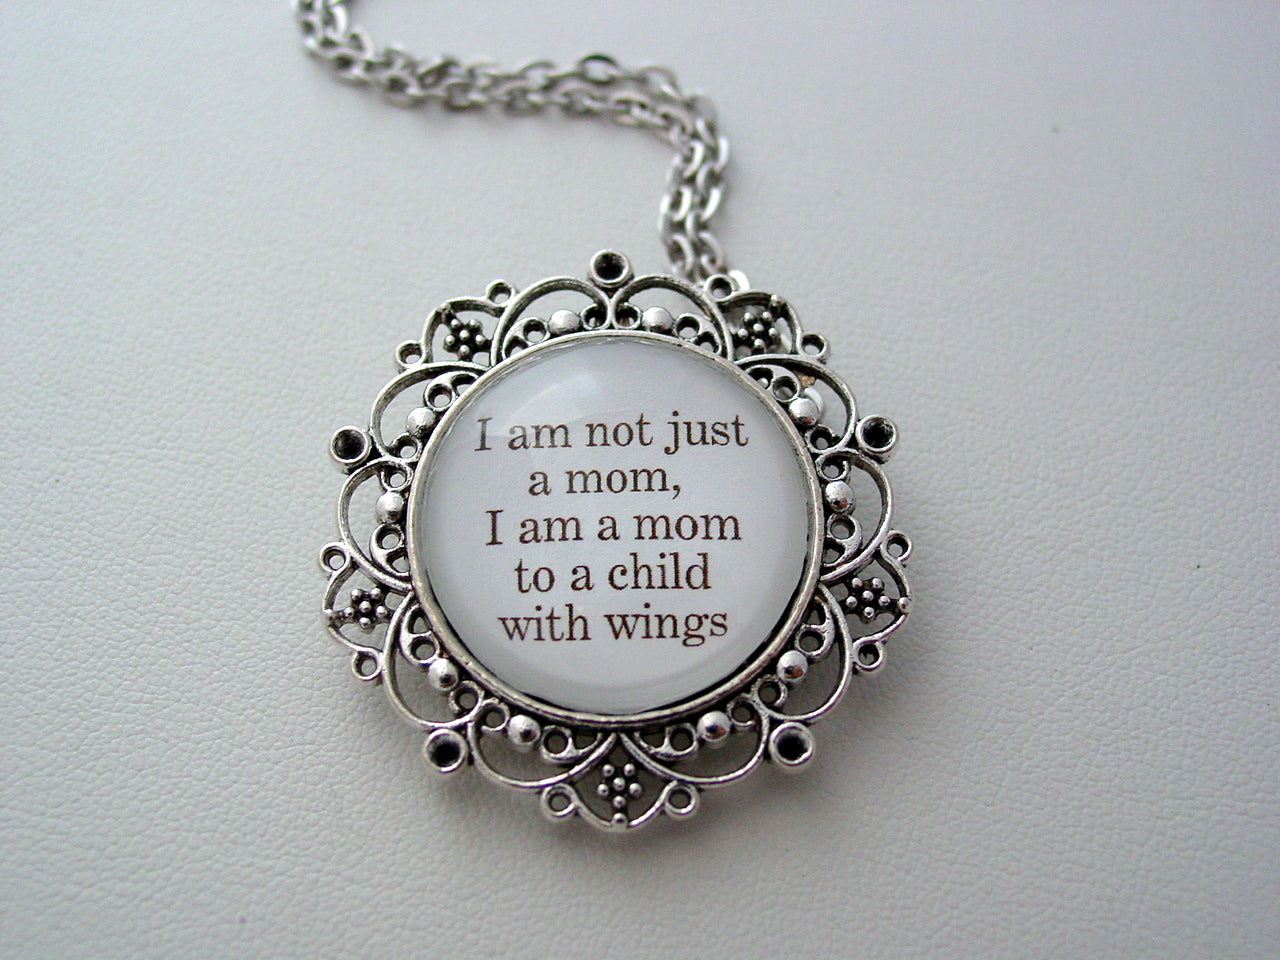 Memorial Jewelry I Am Not Just A Mom, I Am A Mom To A Child With Wings Inspiring Quote Your Choice Keychain or Necklace